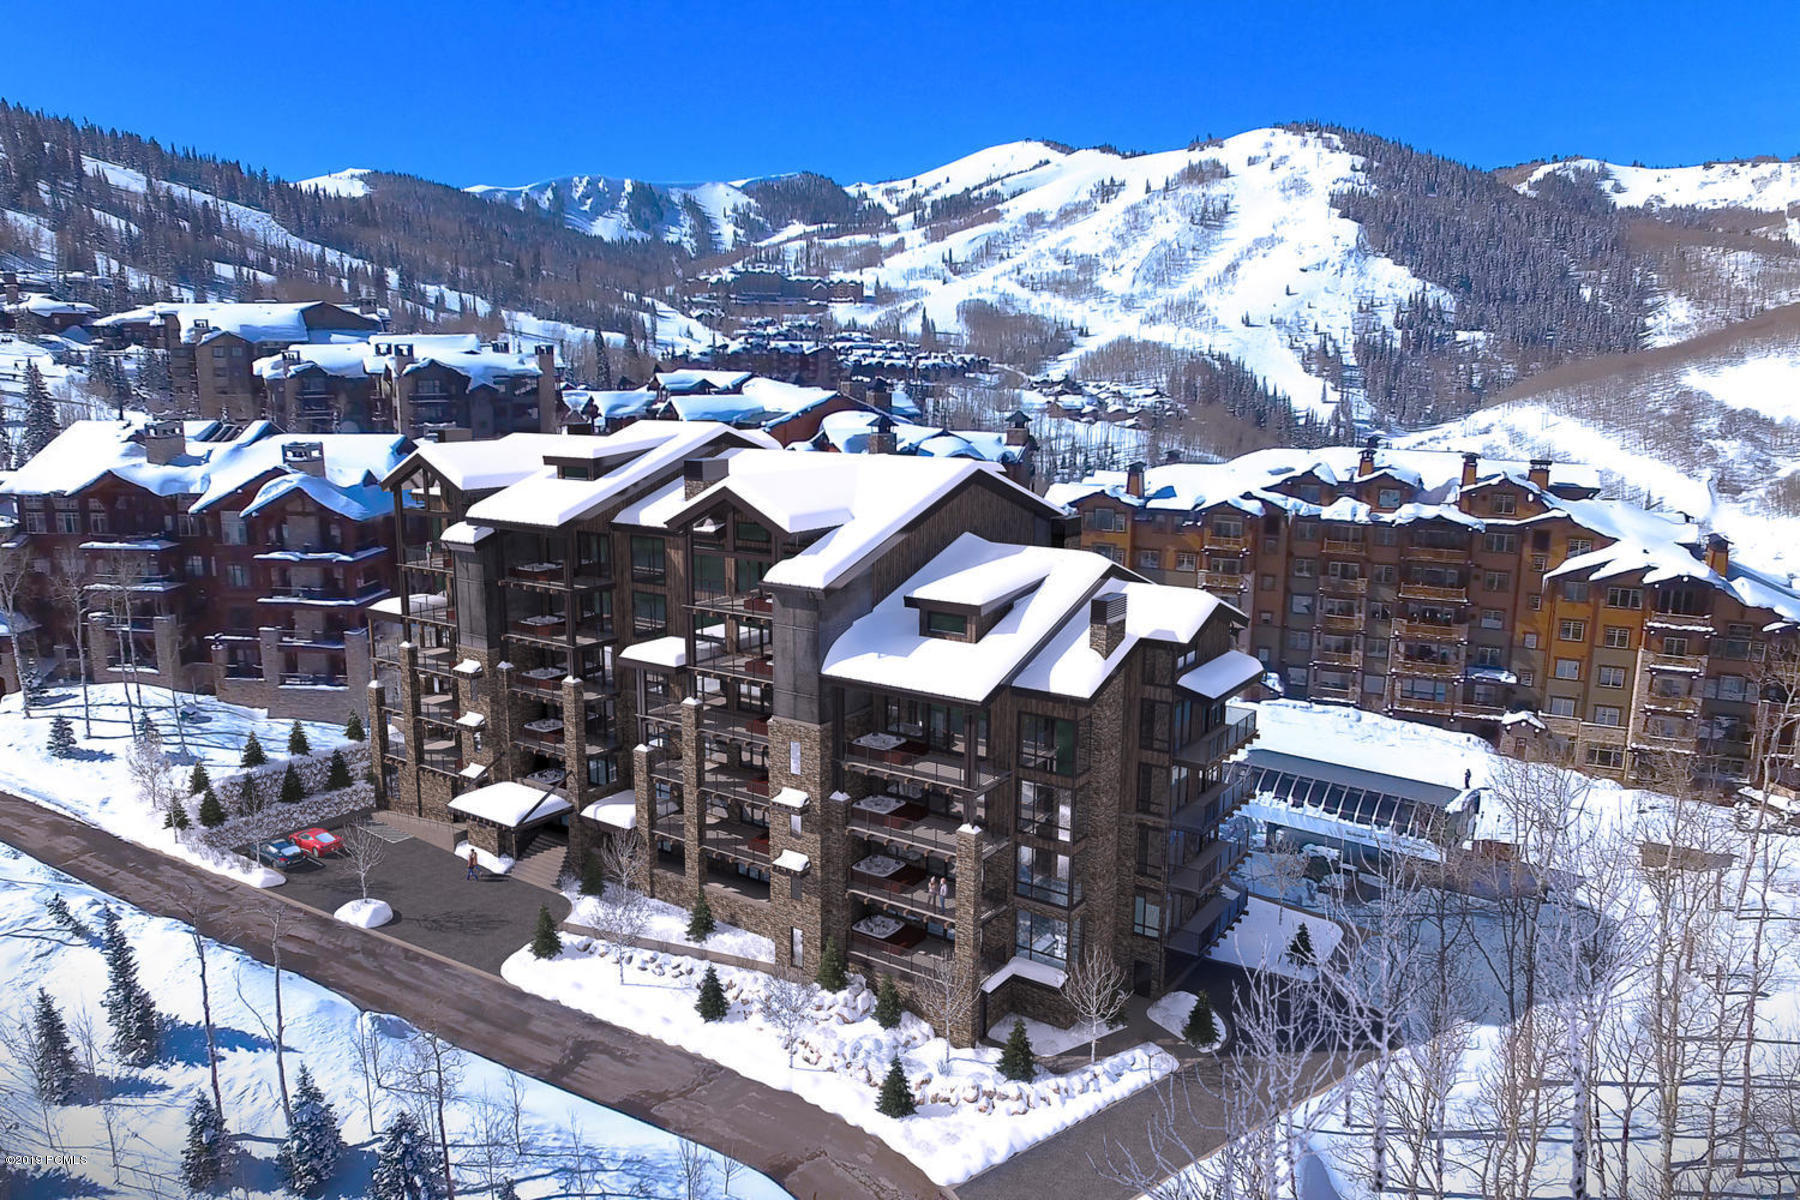 7697 Village Way, Park City, Utah 84060, 5 Bedrooms Bedrooms, ,6 BathroomsBathrooms,Condominium,For Sale,Village Way,11906605